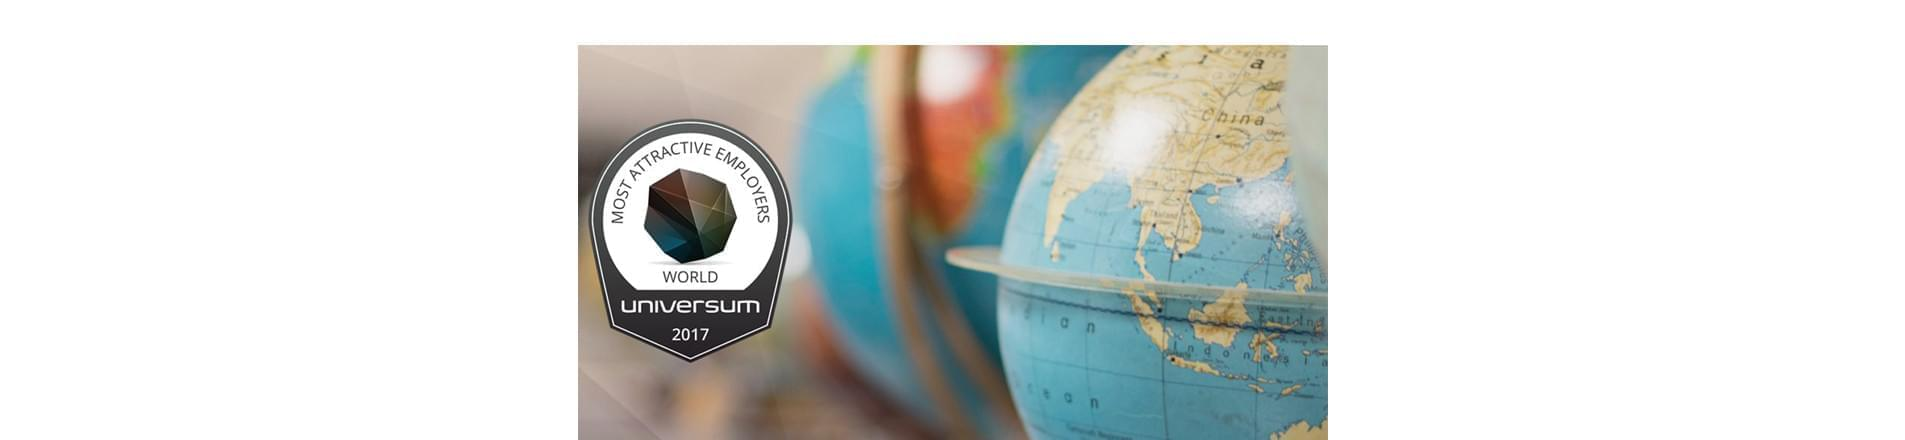 Universum World's Most Attractive Employers 2017 Logo next to a globe of the world.